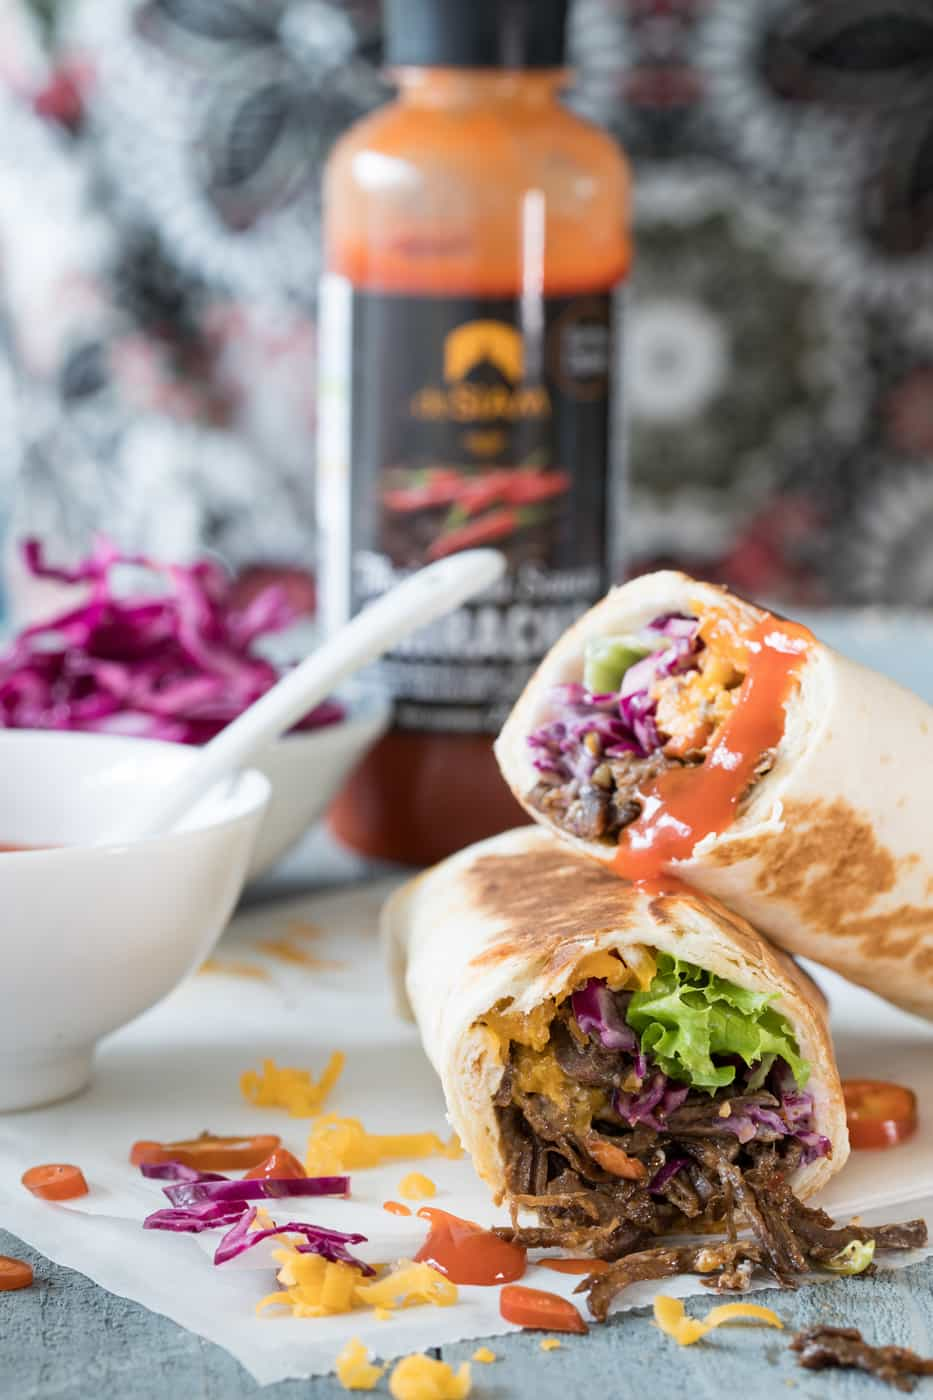 Bulled Beef met wraps